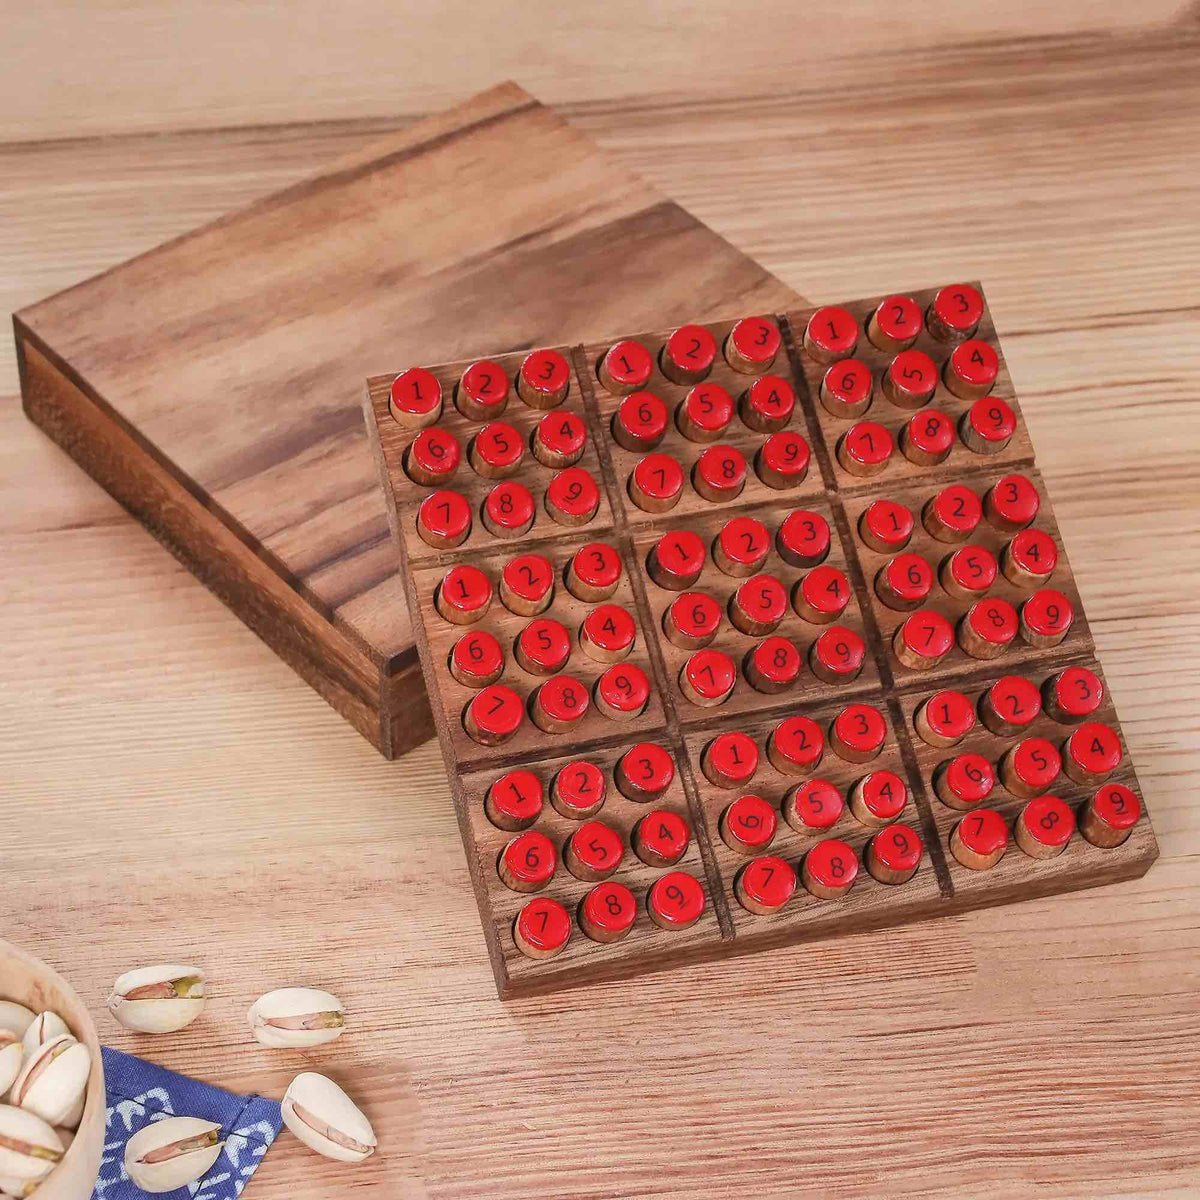 """Sudoku"" - Hand Made Wood Sudoku Puzzle Game"